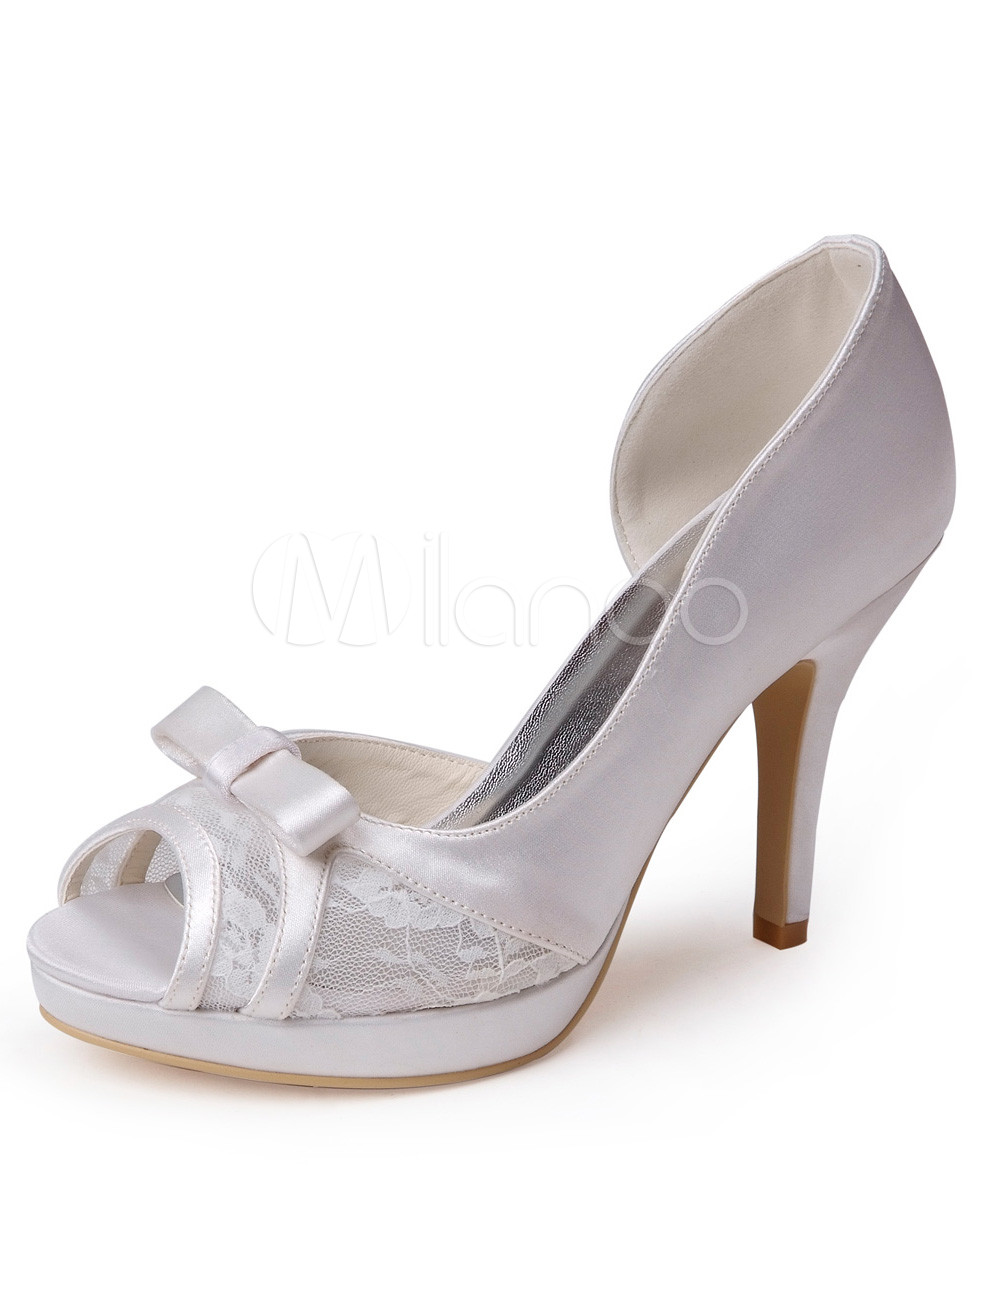 Buy Ecru White Bow Silk And Satin Fashion Women's Peep Toe Shoes for $58.49 in Milanoo store